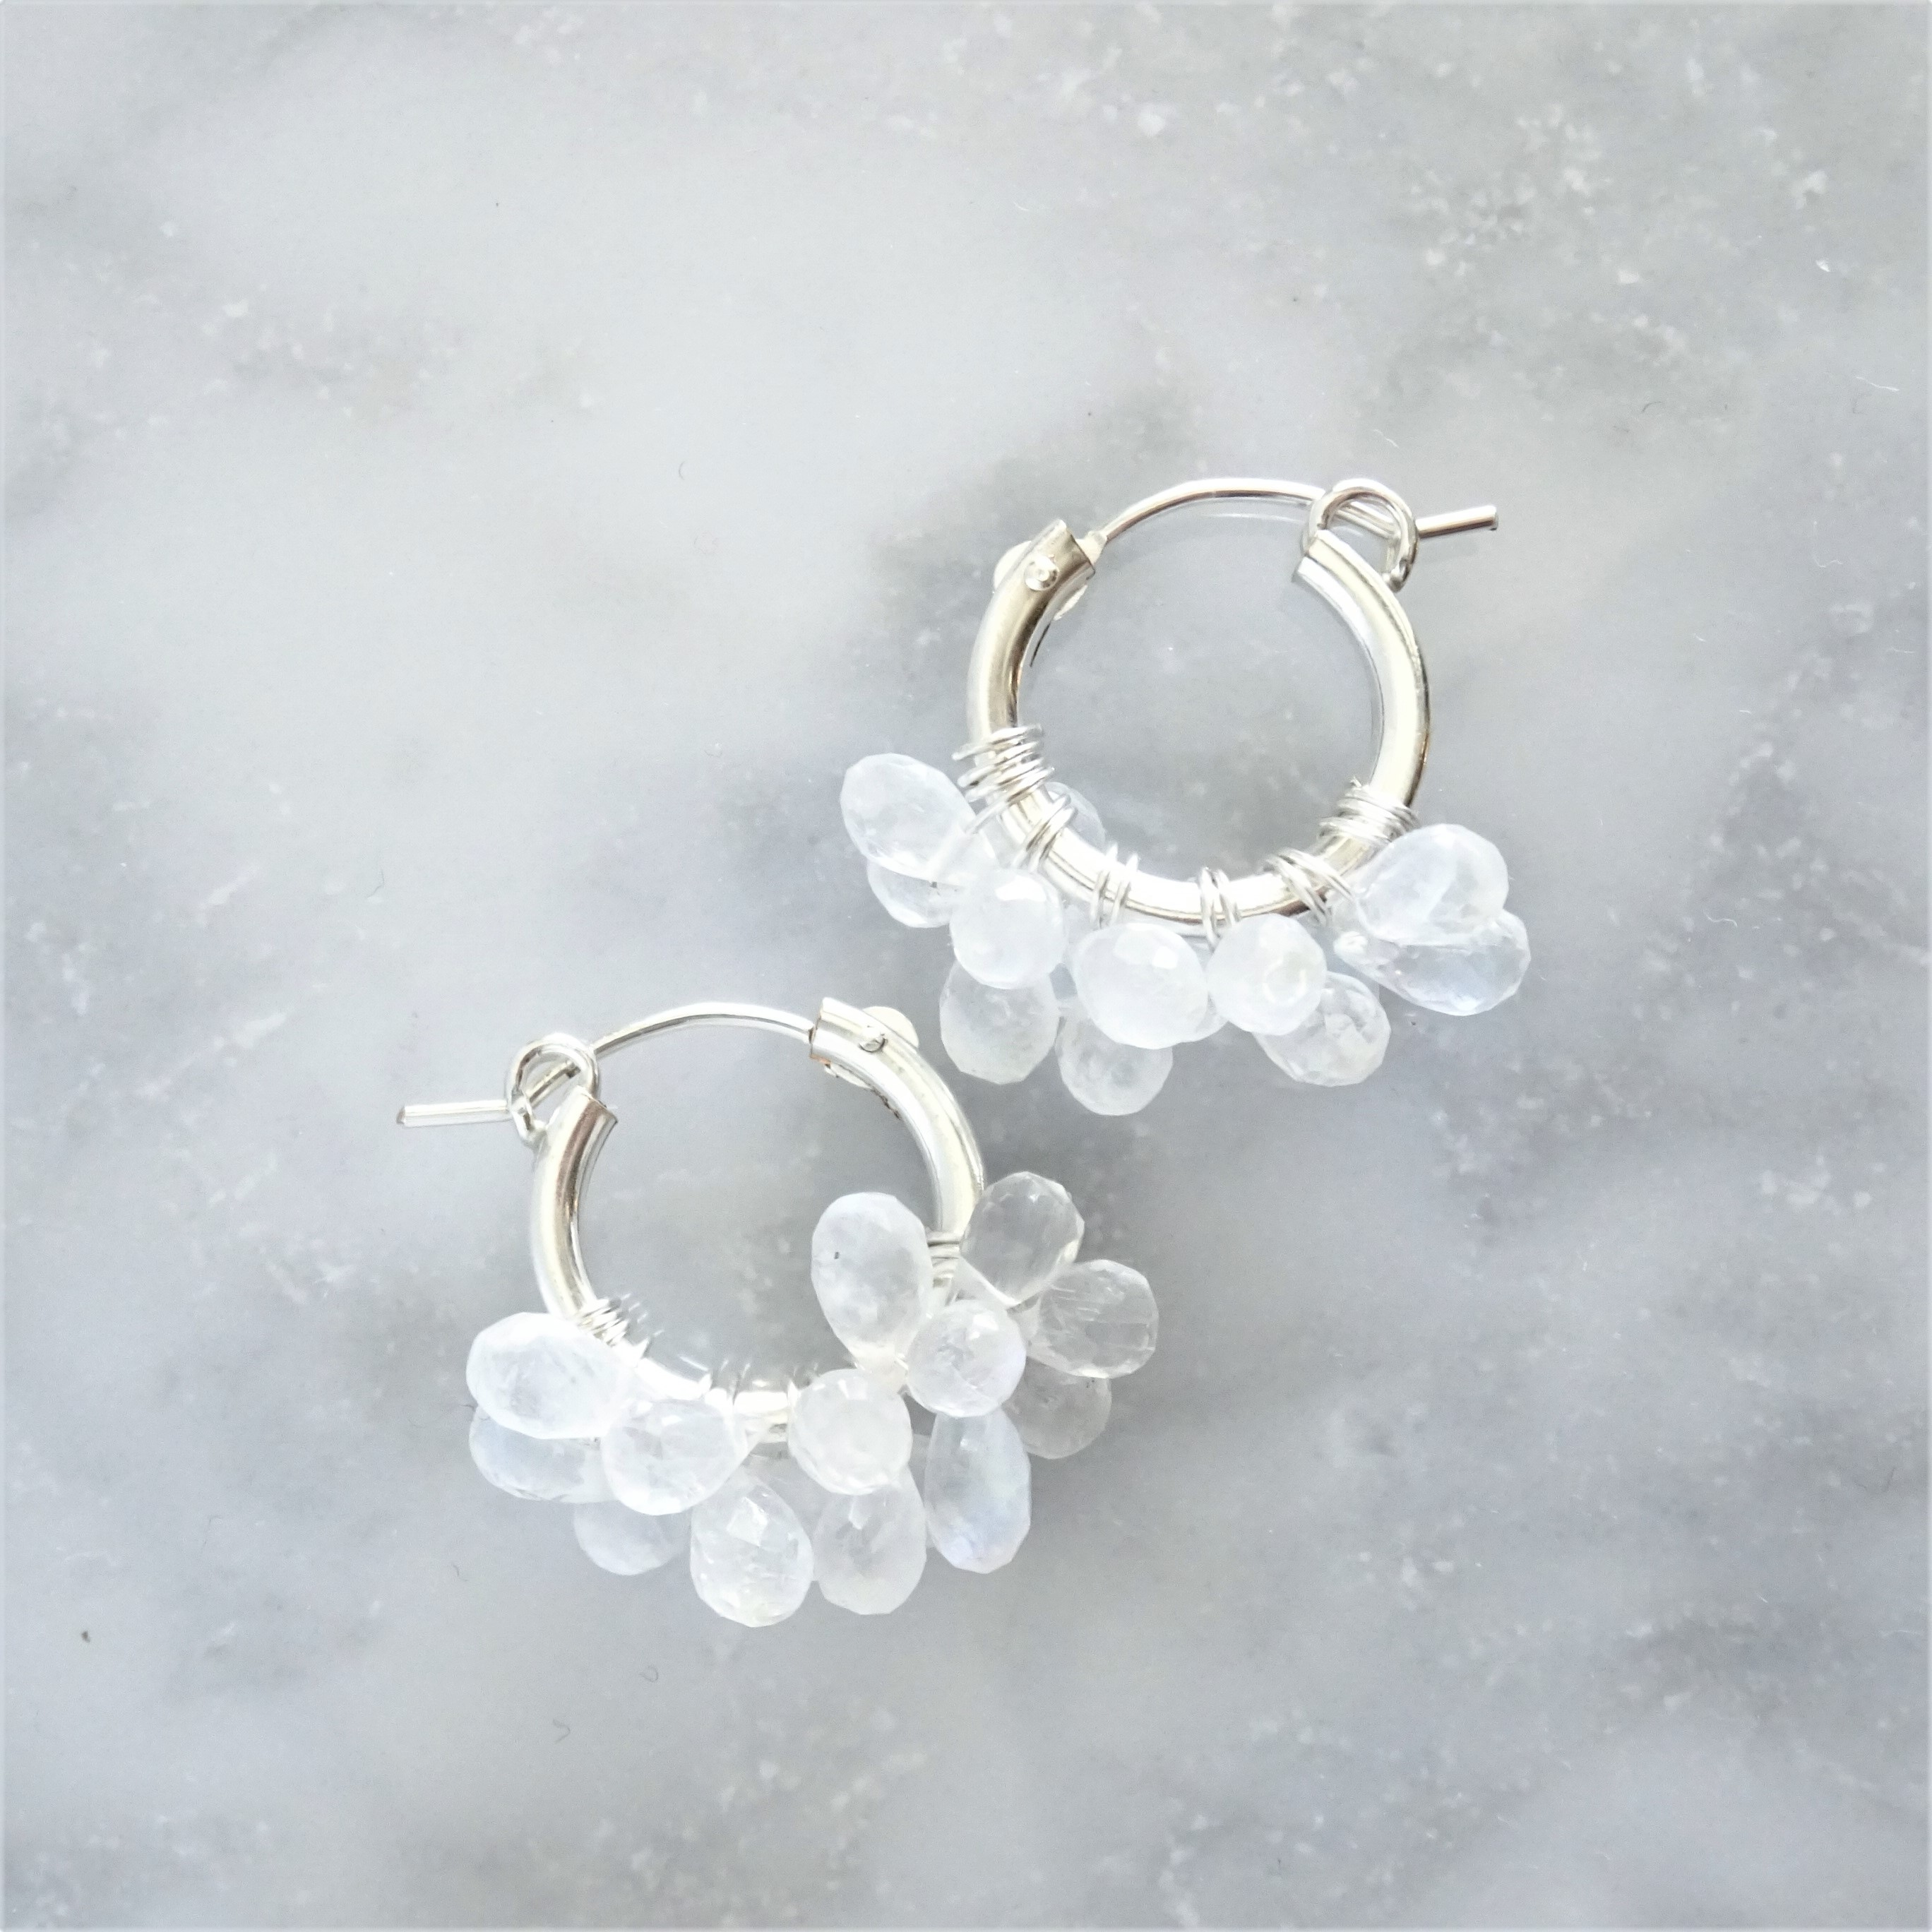 SV925 SF宝石質Rainbow Moonstone*wrapped hoop pierced earring / earring